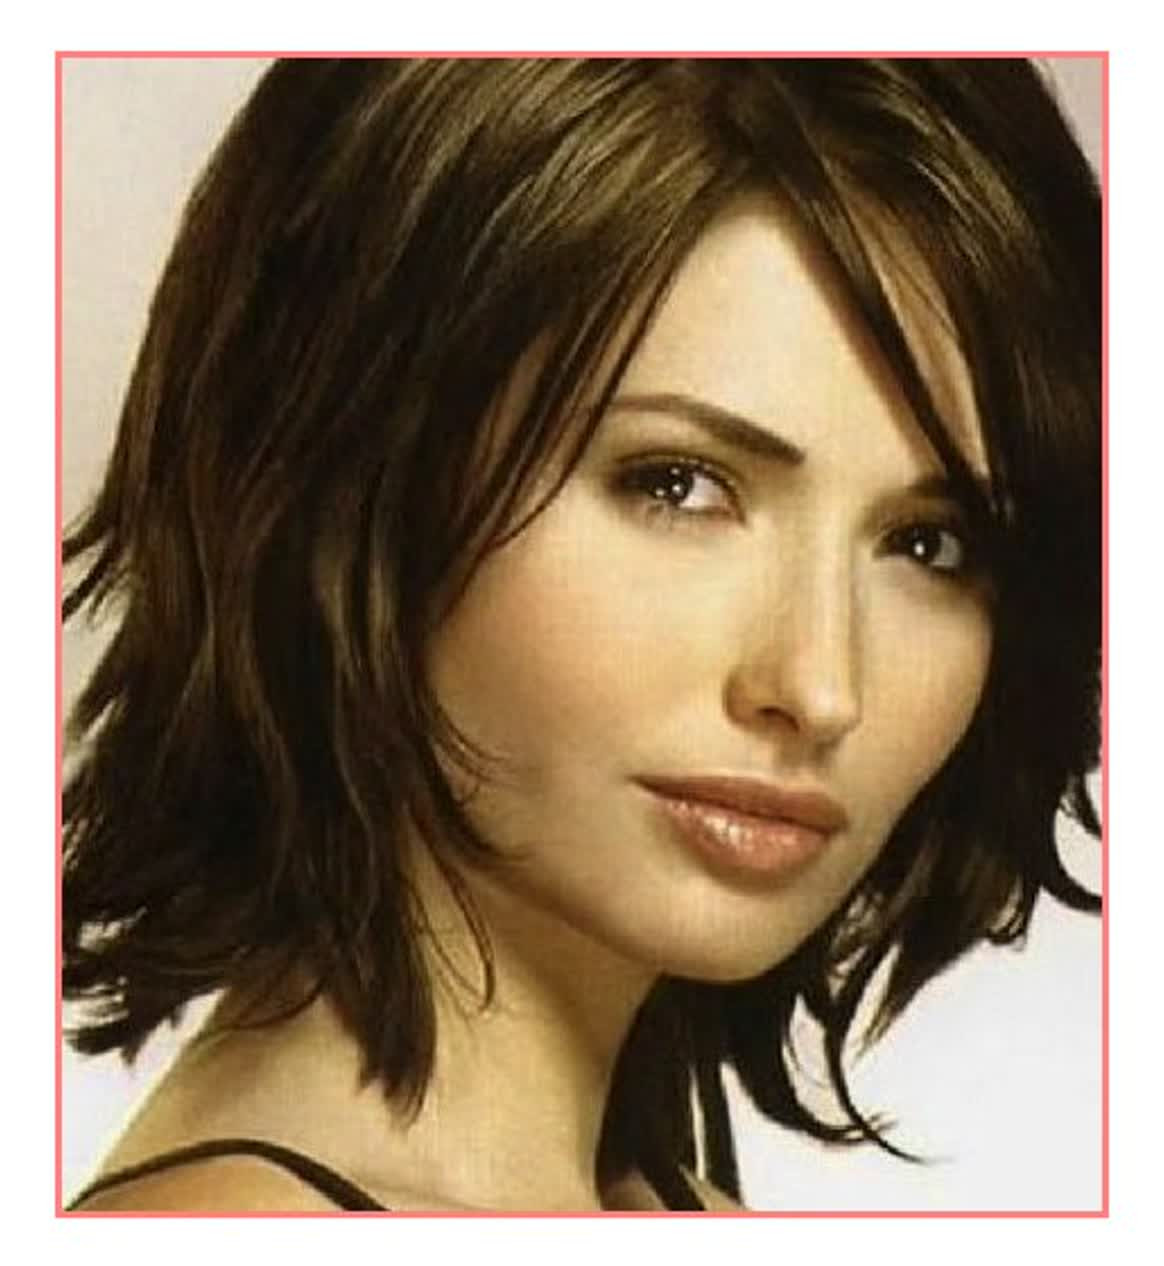 Best ideas about Haircuts For Females . Save or Pin Haircut women 2018 BentalaSalon Now.